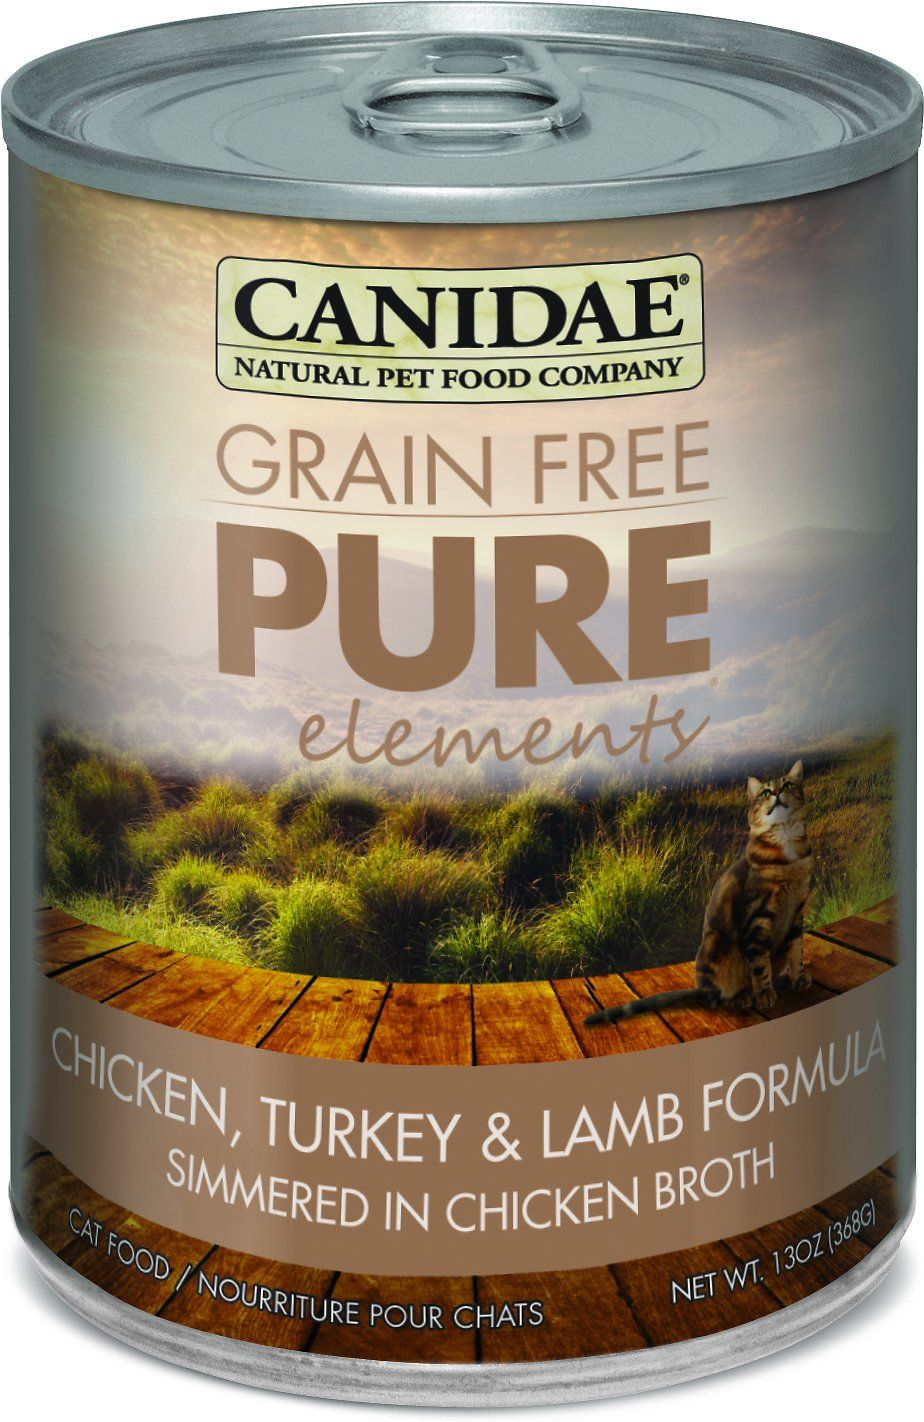 CANIDAE GrainFree PURE Elements can formula is made with